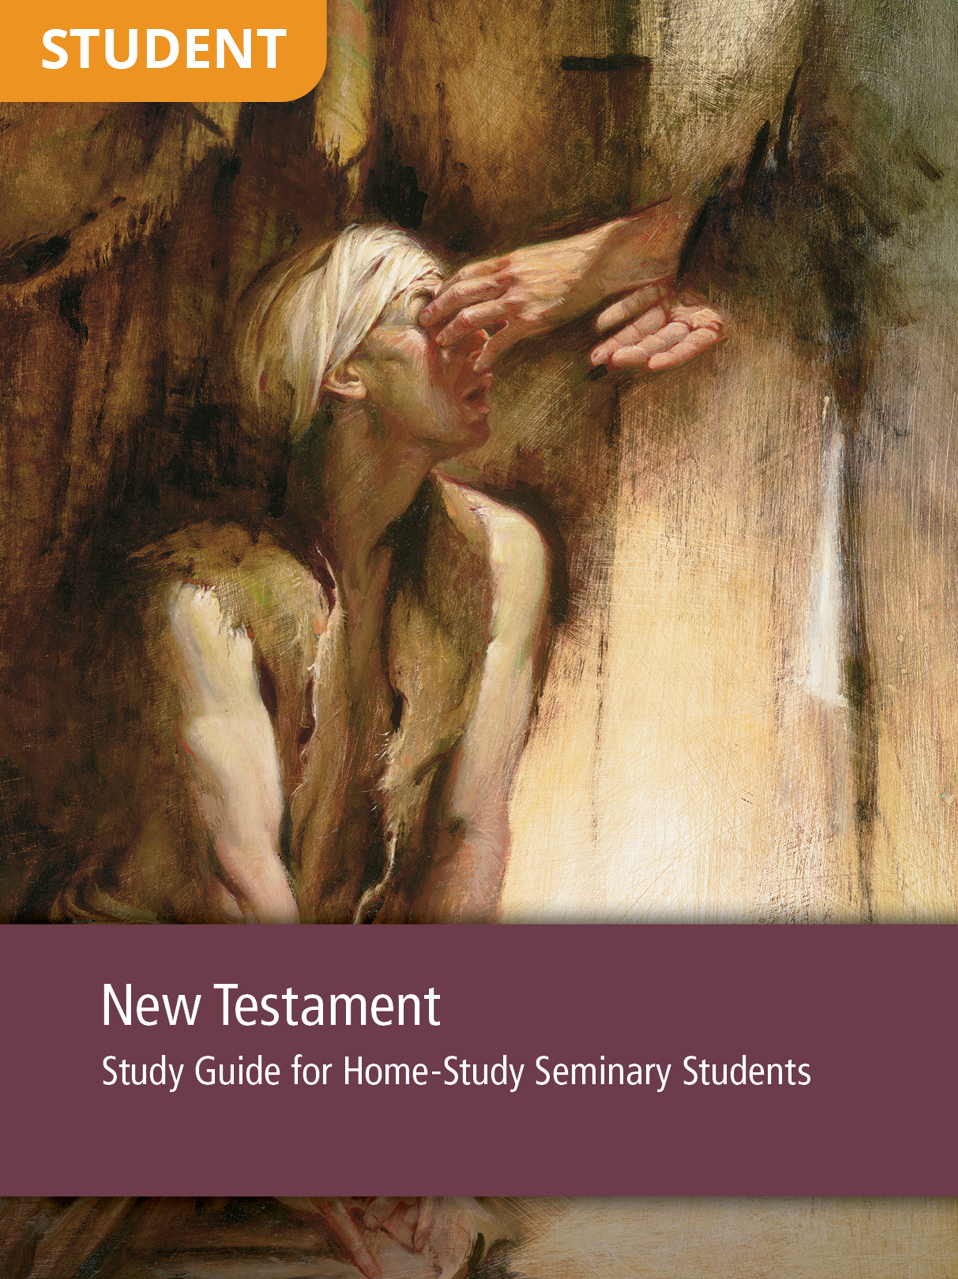 New Testament Study Guide for Home-Study Seminary Seminary Students